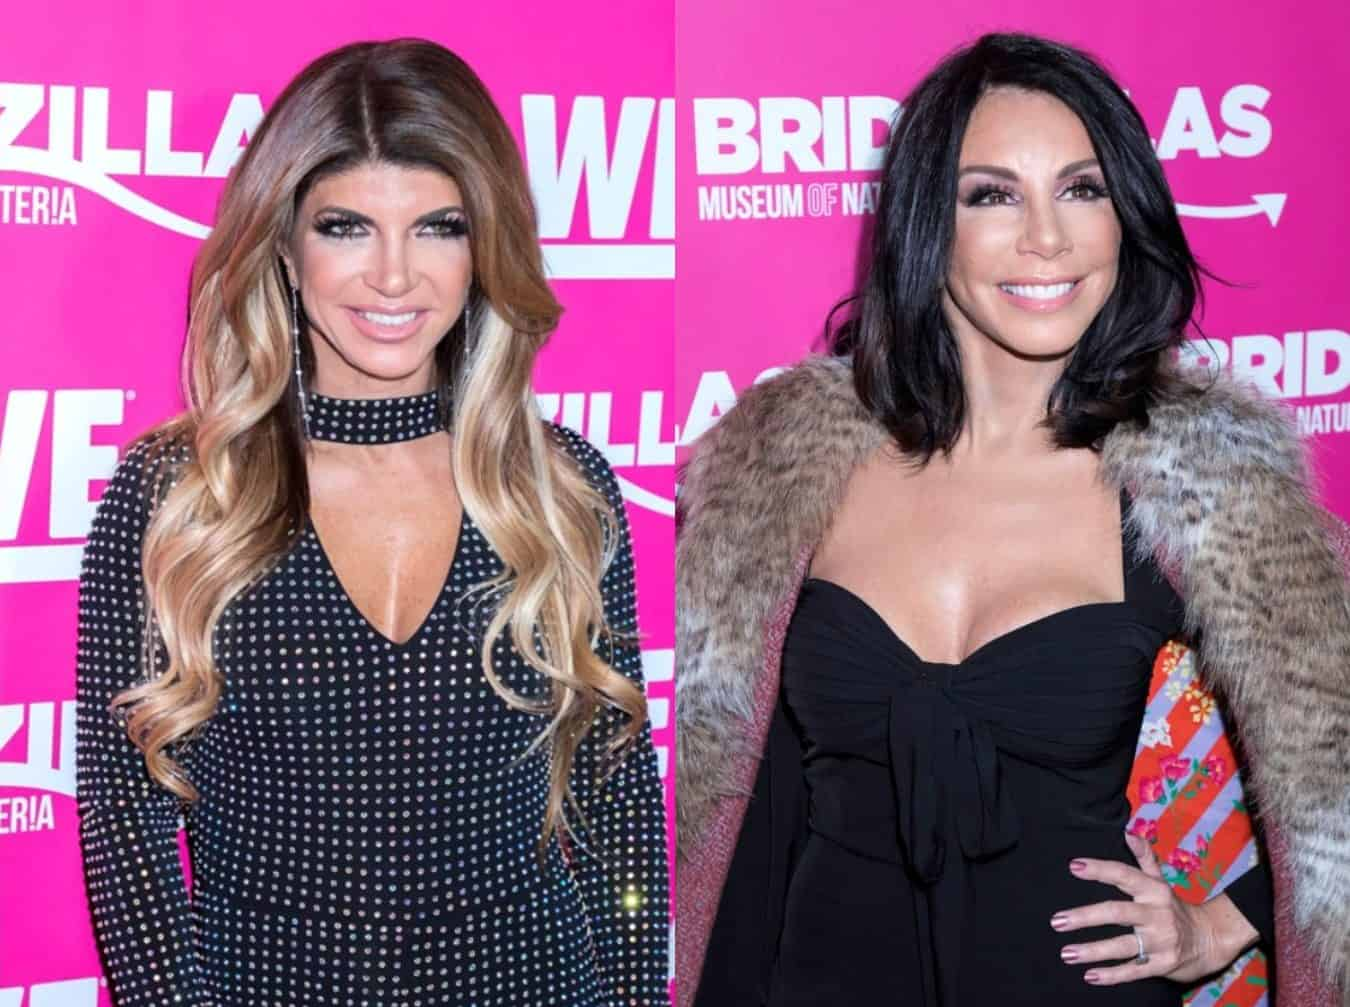 RHONJ Star Teresa Giudice Reveals Why She's No Longer Friends With Danielle Staub, Does She Regret Defending Her?